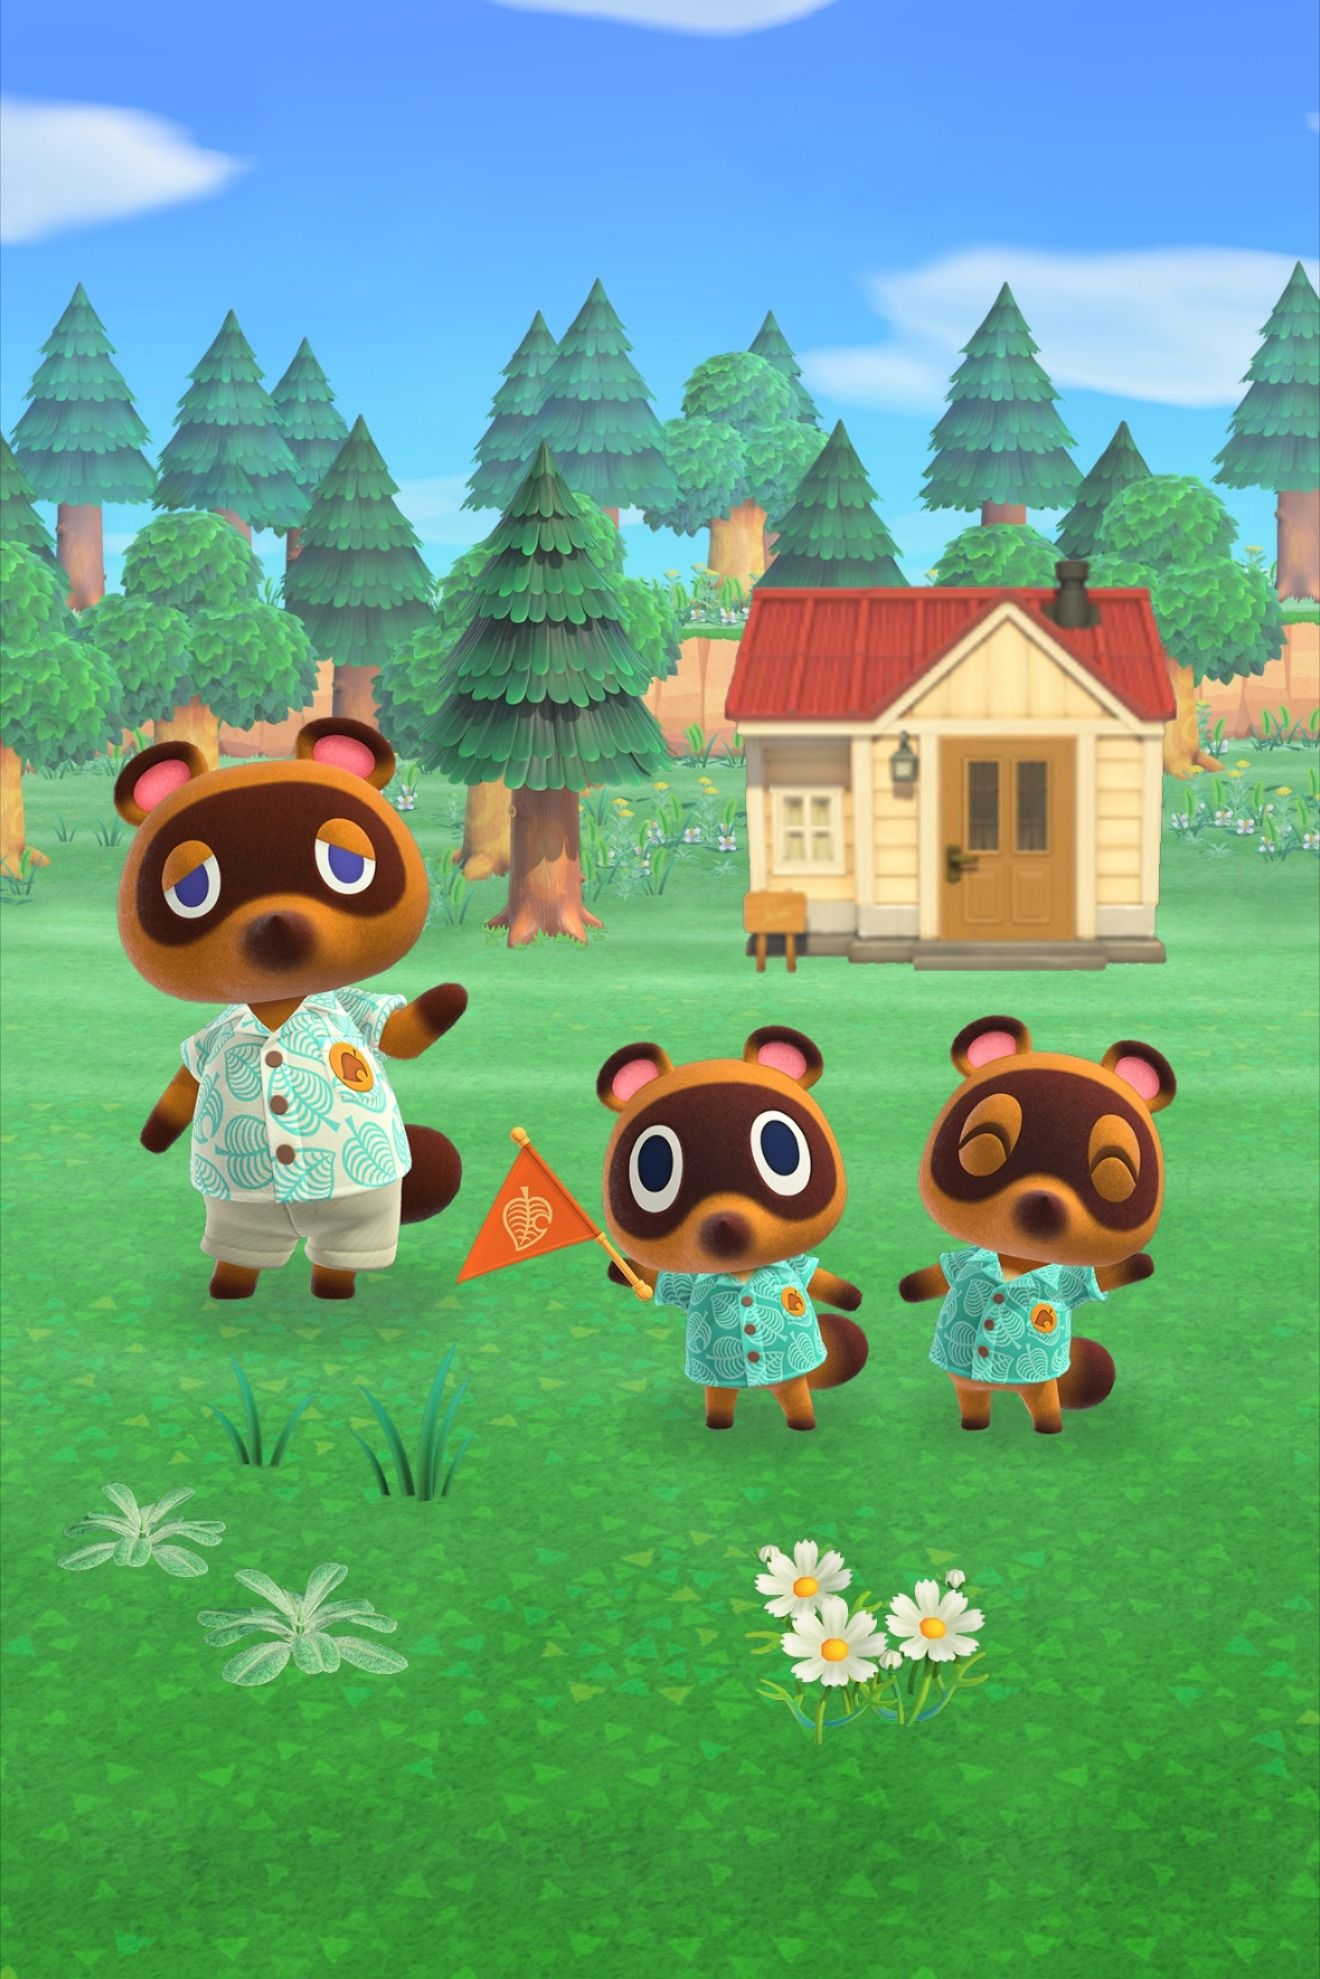 Animal Crossing Mobile Wallpaper Hd Http Wallpapersalbum Com Animal Crossing Mobile Wallpaper Hd Html In 2020 Animal Wallpaper Animal Crossing Game Pink Animals